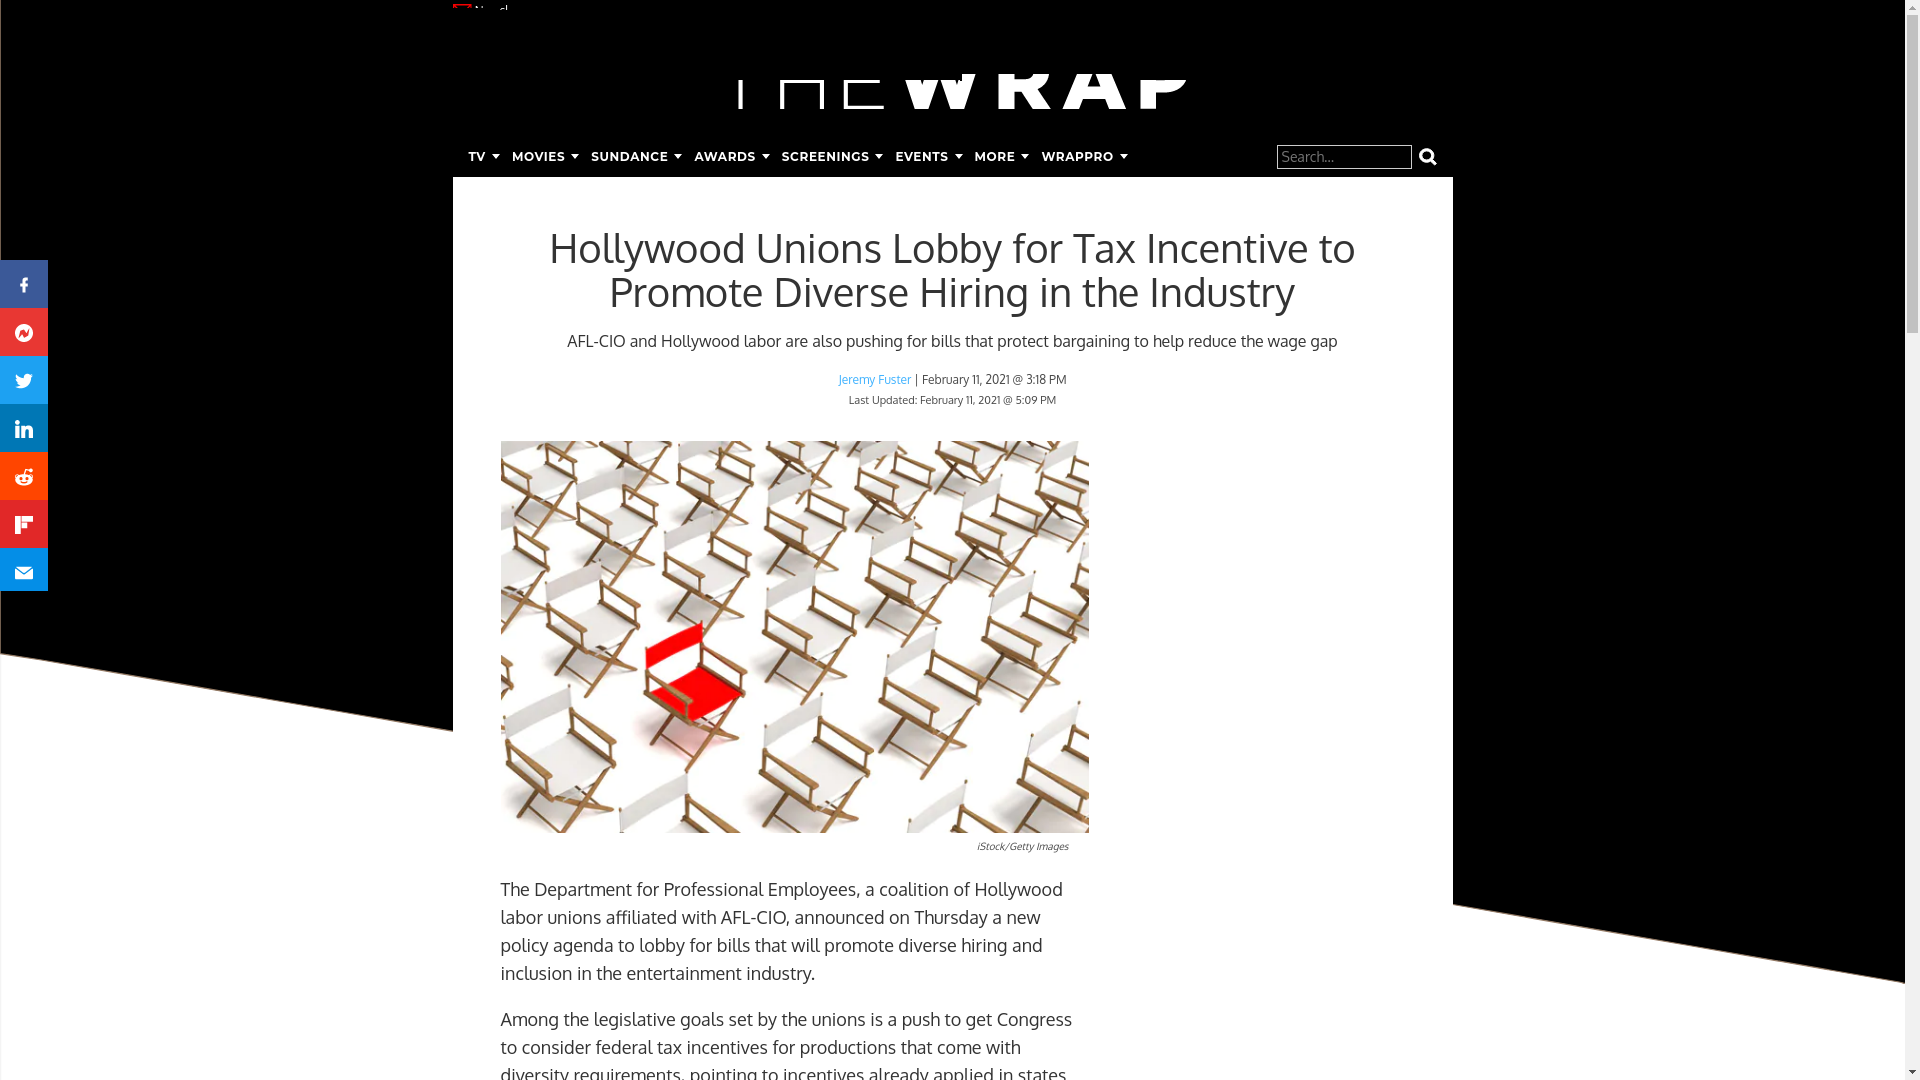 Fairness Rocks News Hollywood Unions Lobby for Tax Incentive to Promote Diverse Hiring in the Industry